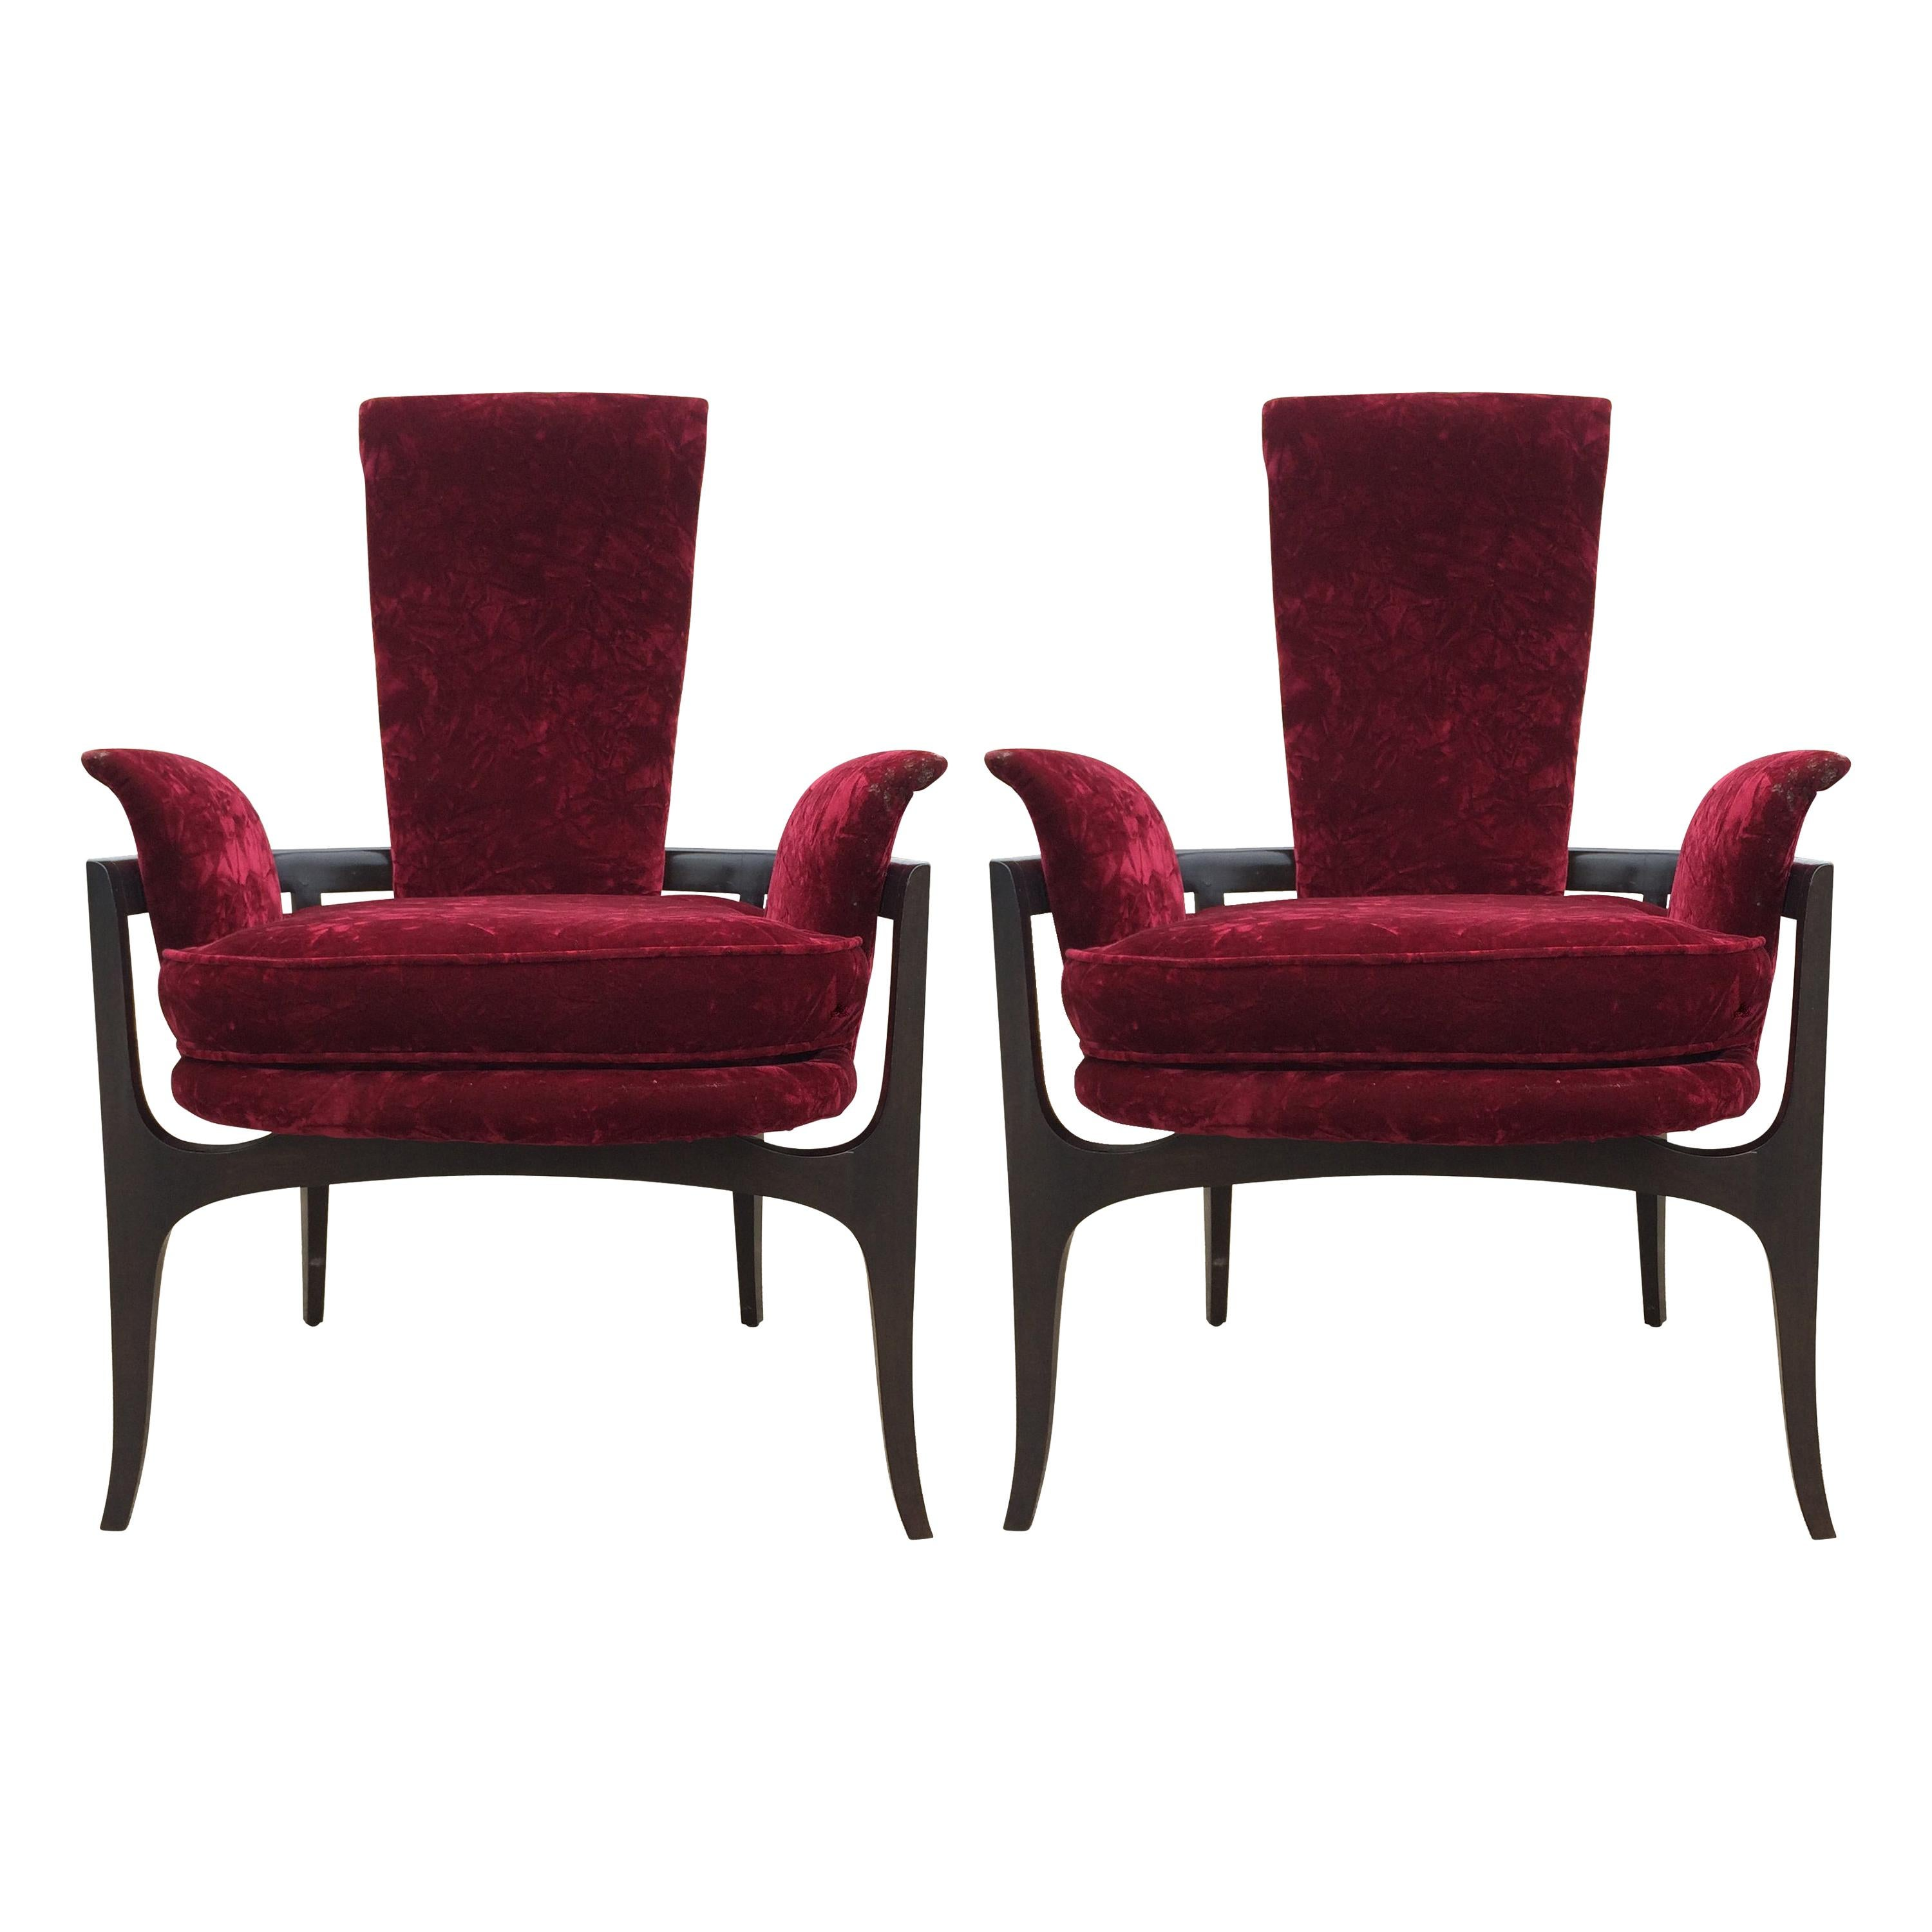 Sculptural Mid-Century Modern Lounge Chairs